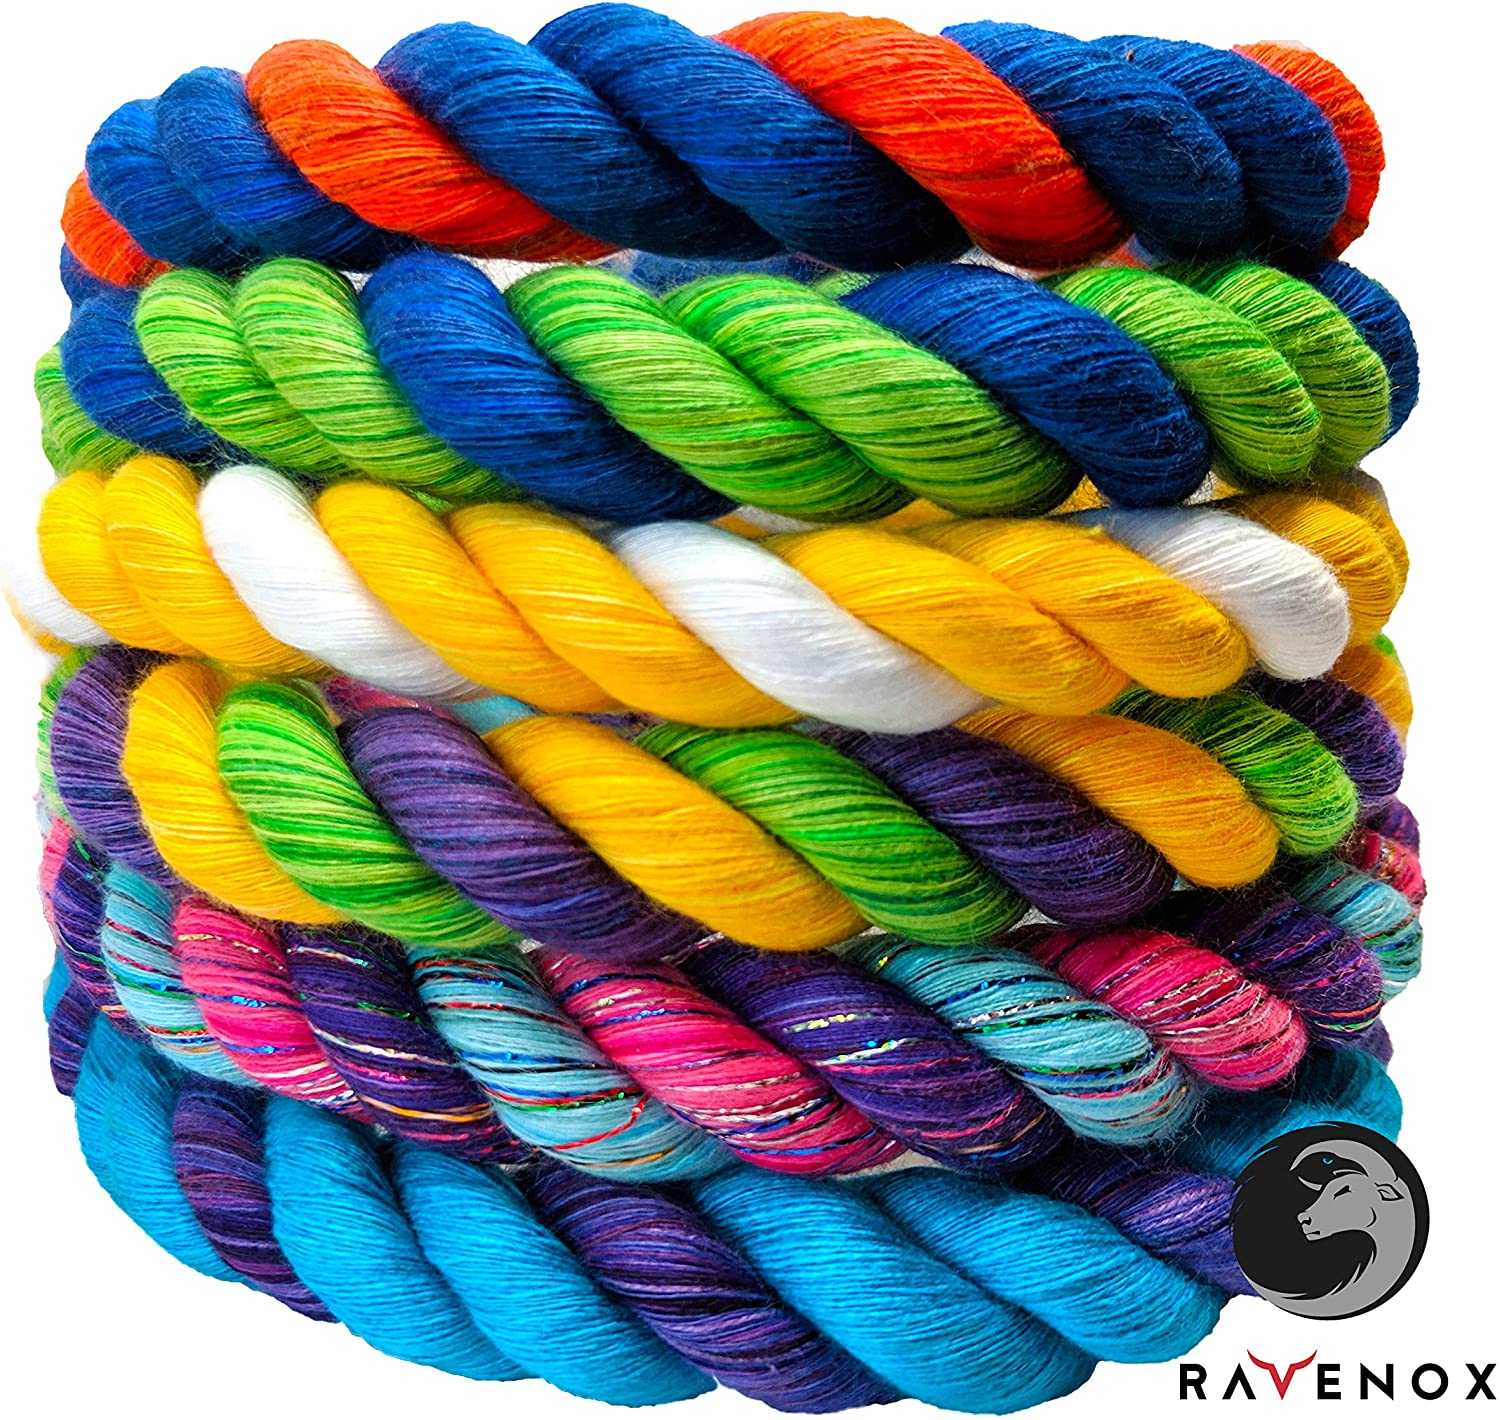 Ravenox Colorful Twisted Cotton Rope Ranking TOP13 online shop in Custom The Made USA